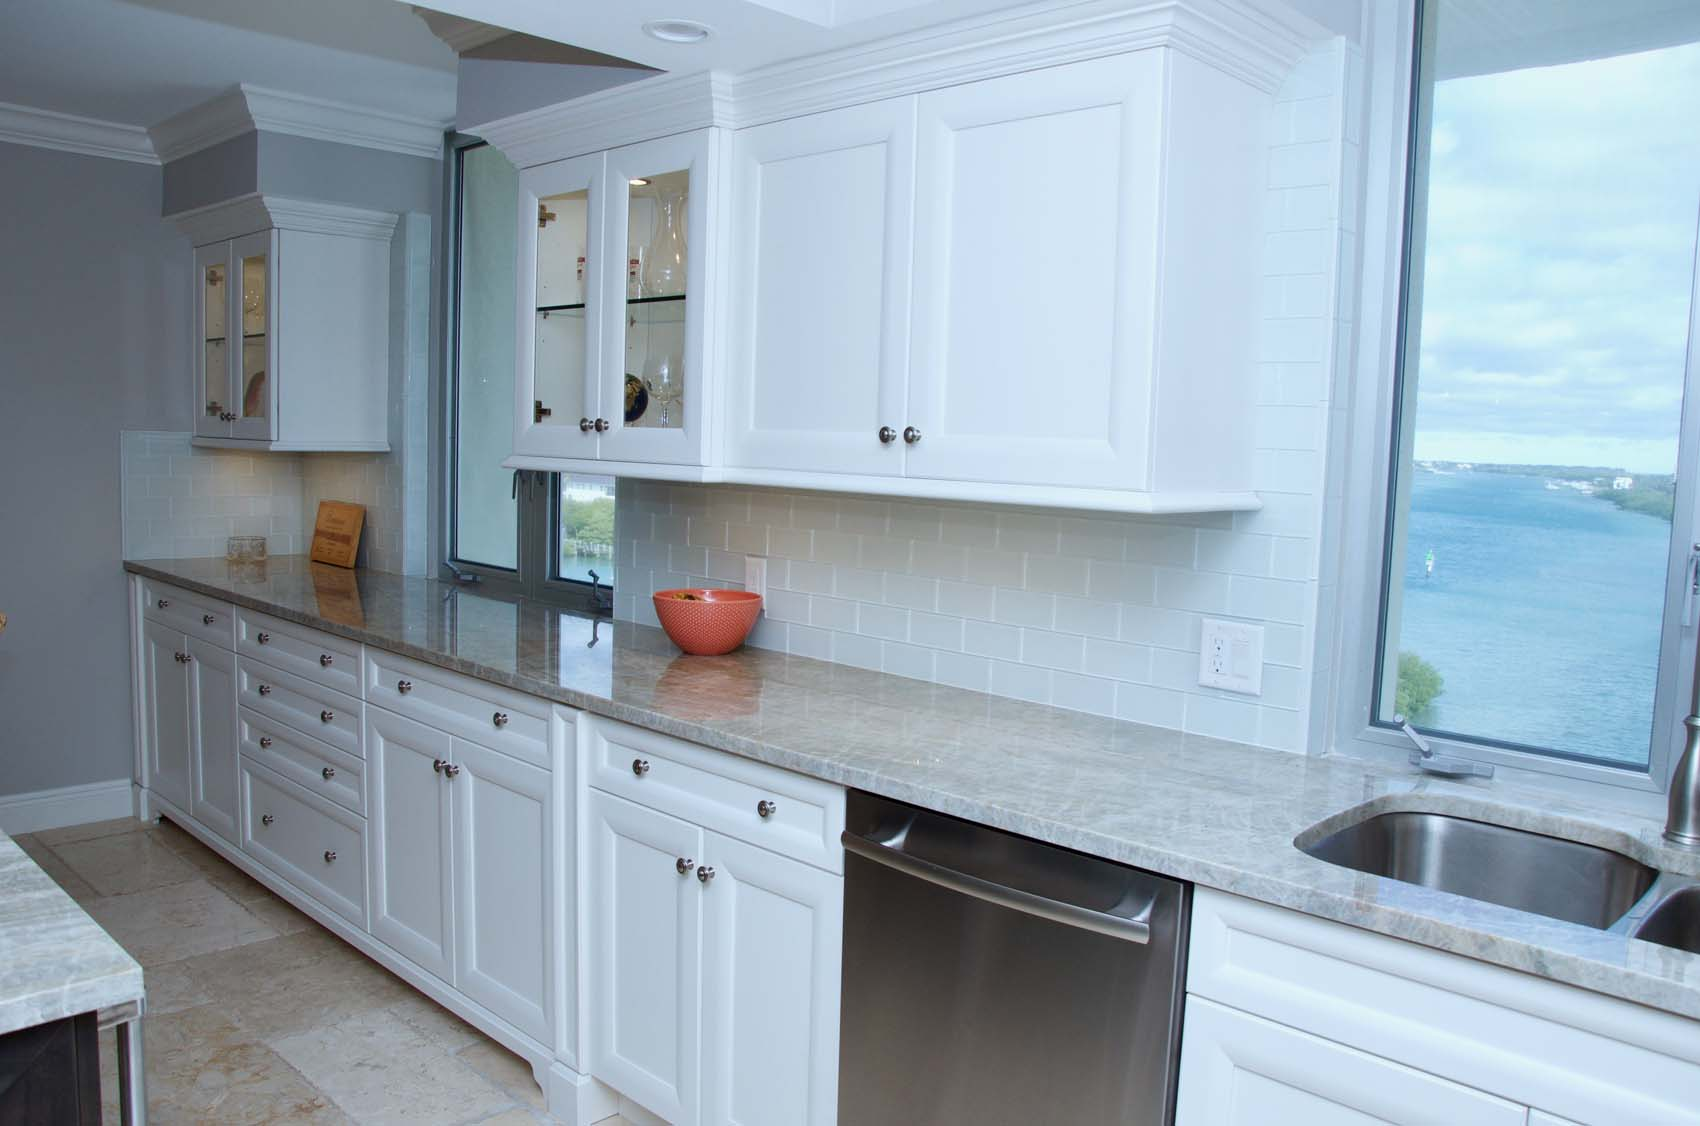 Kitchen Cabinetry, Design & Remodeling